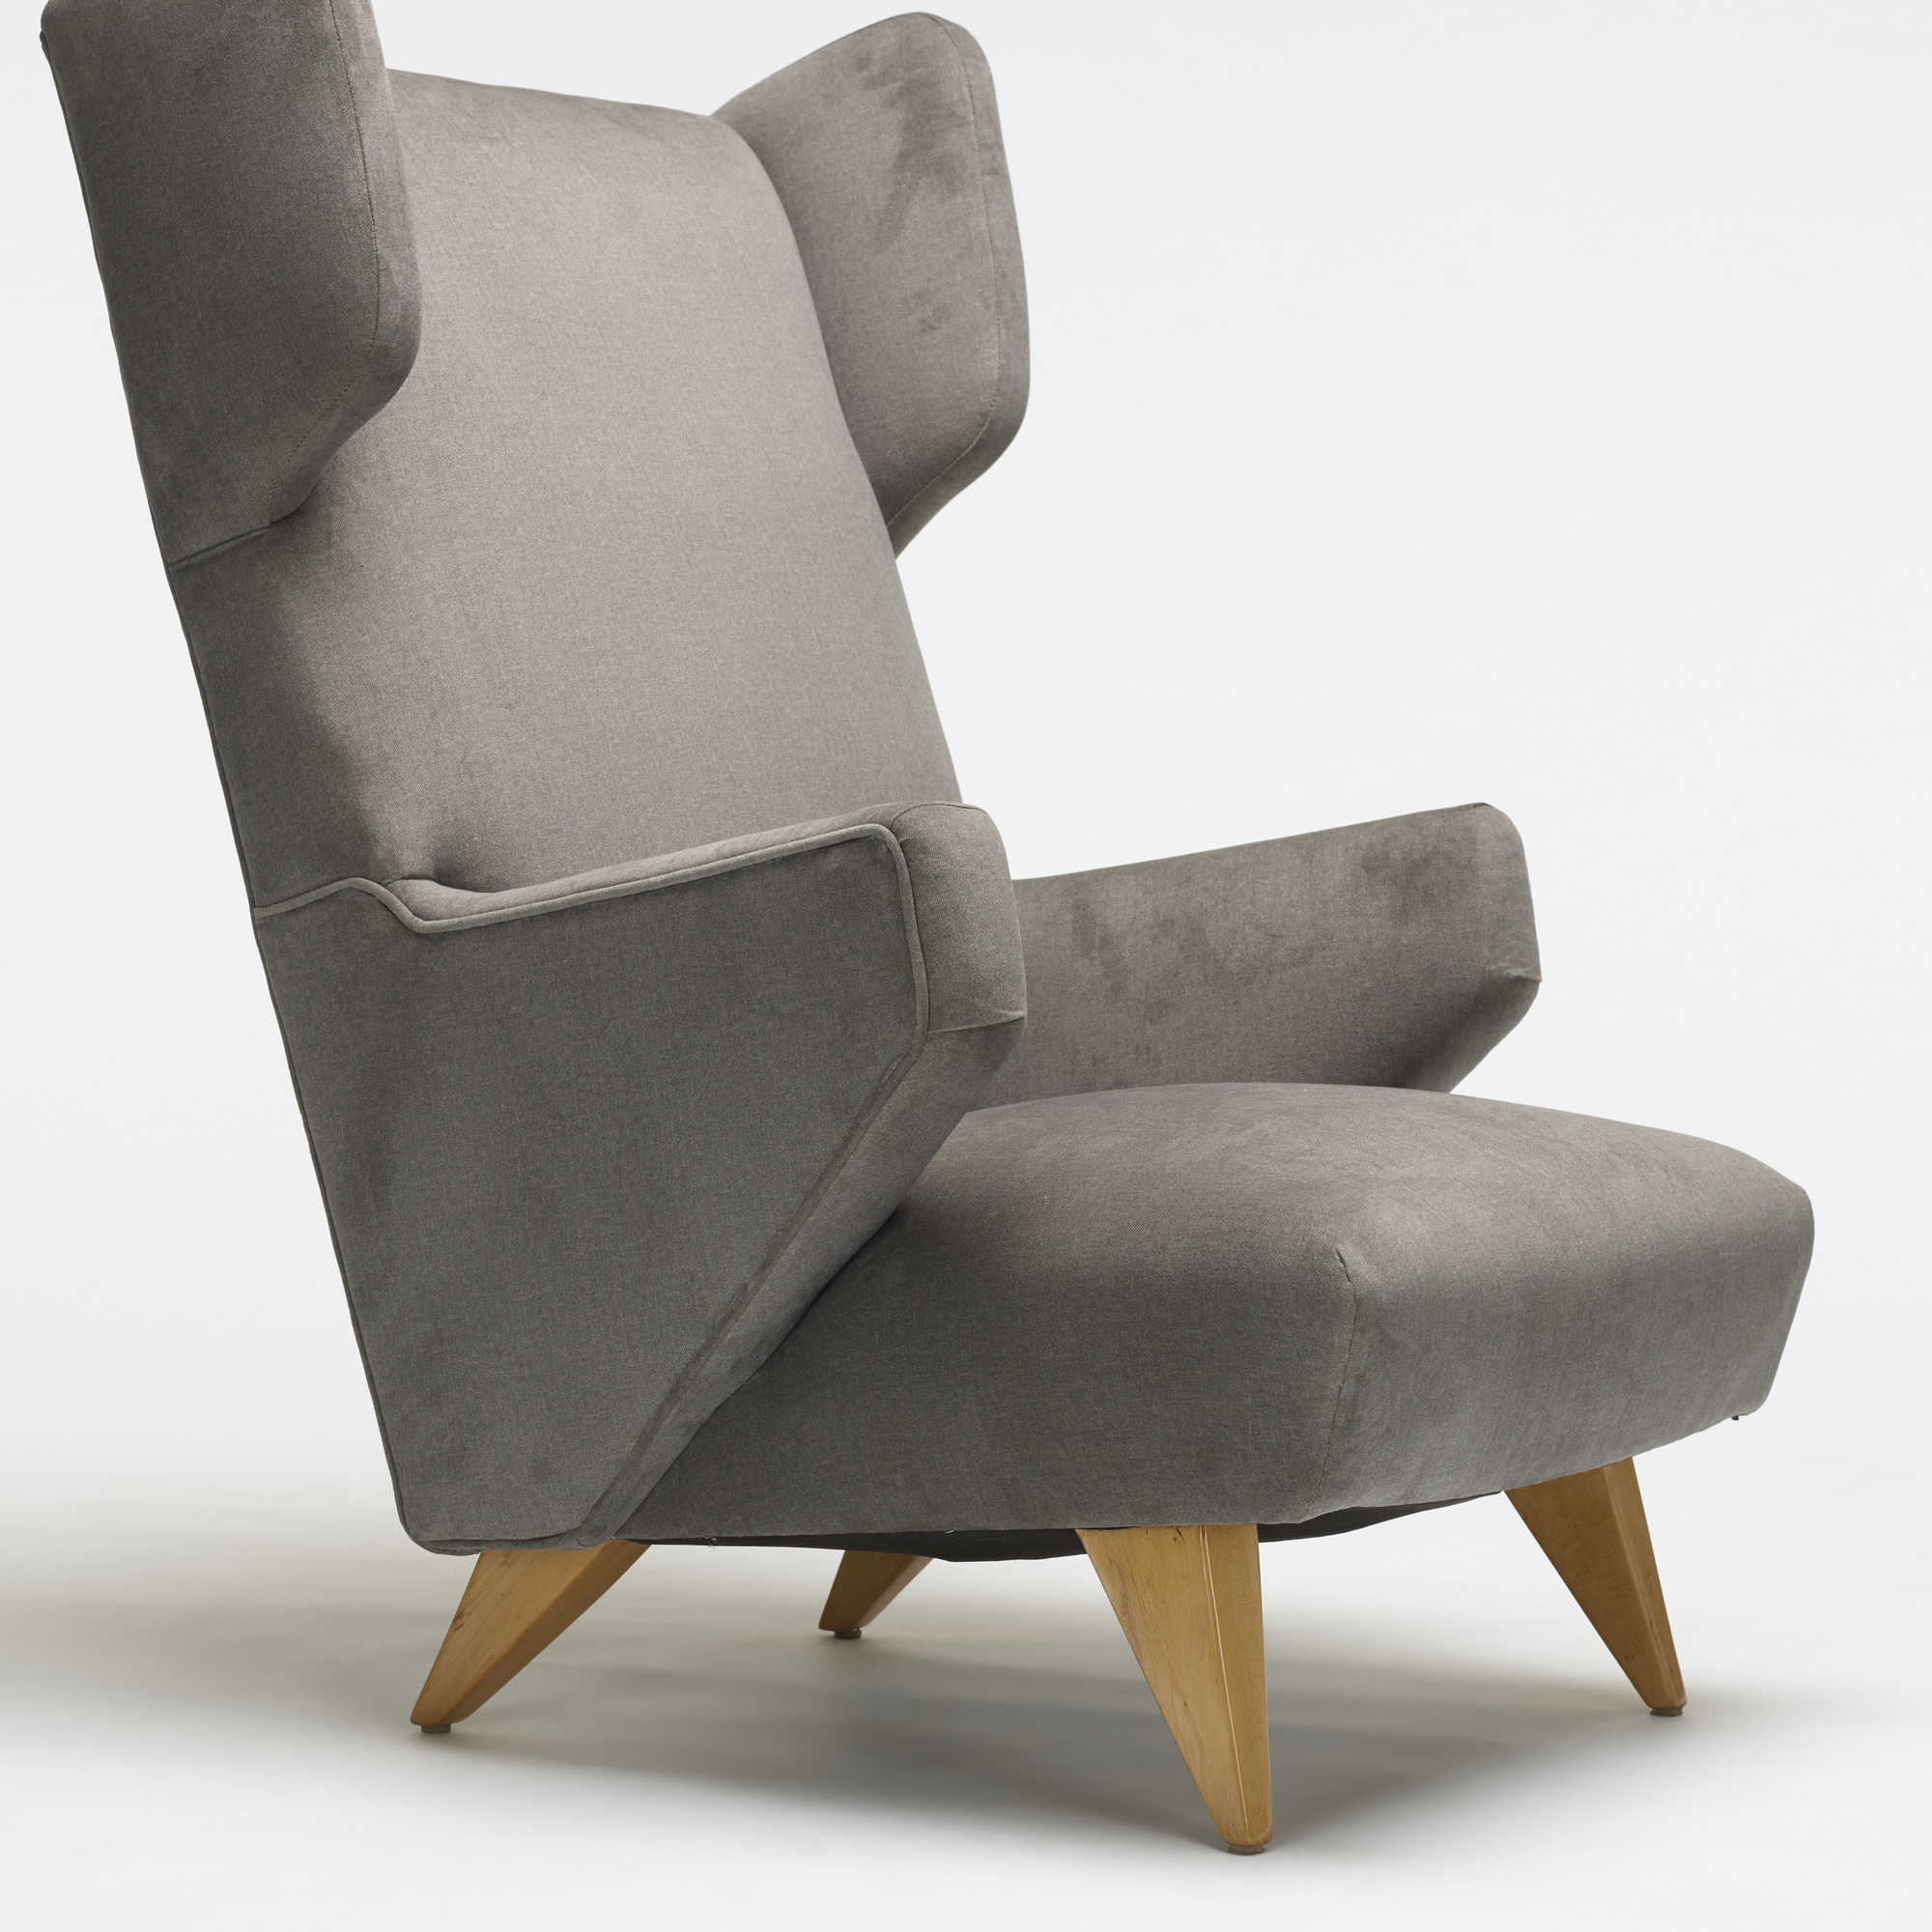 240 jens risom wingback lounge chair for Chair design 2000